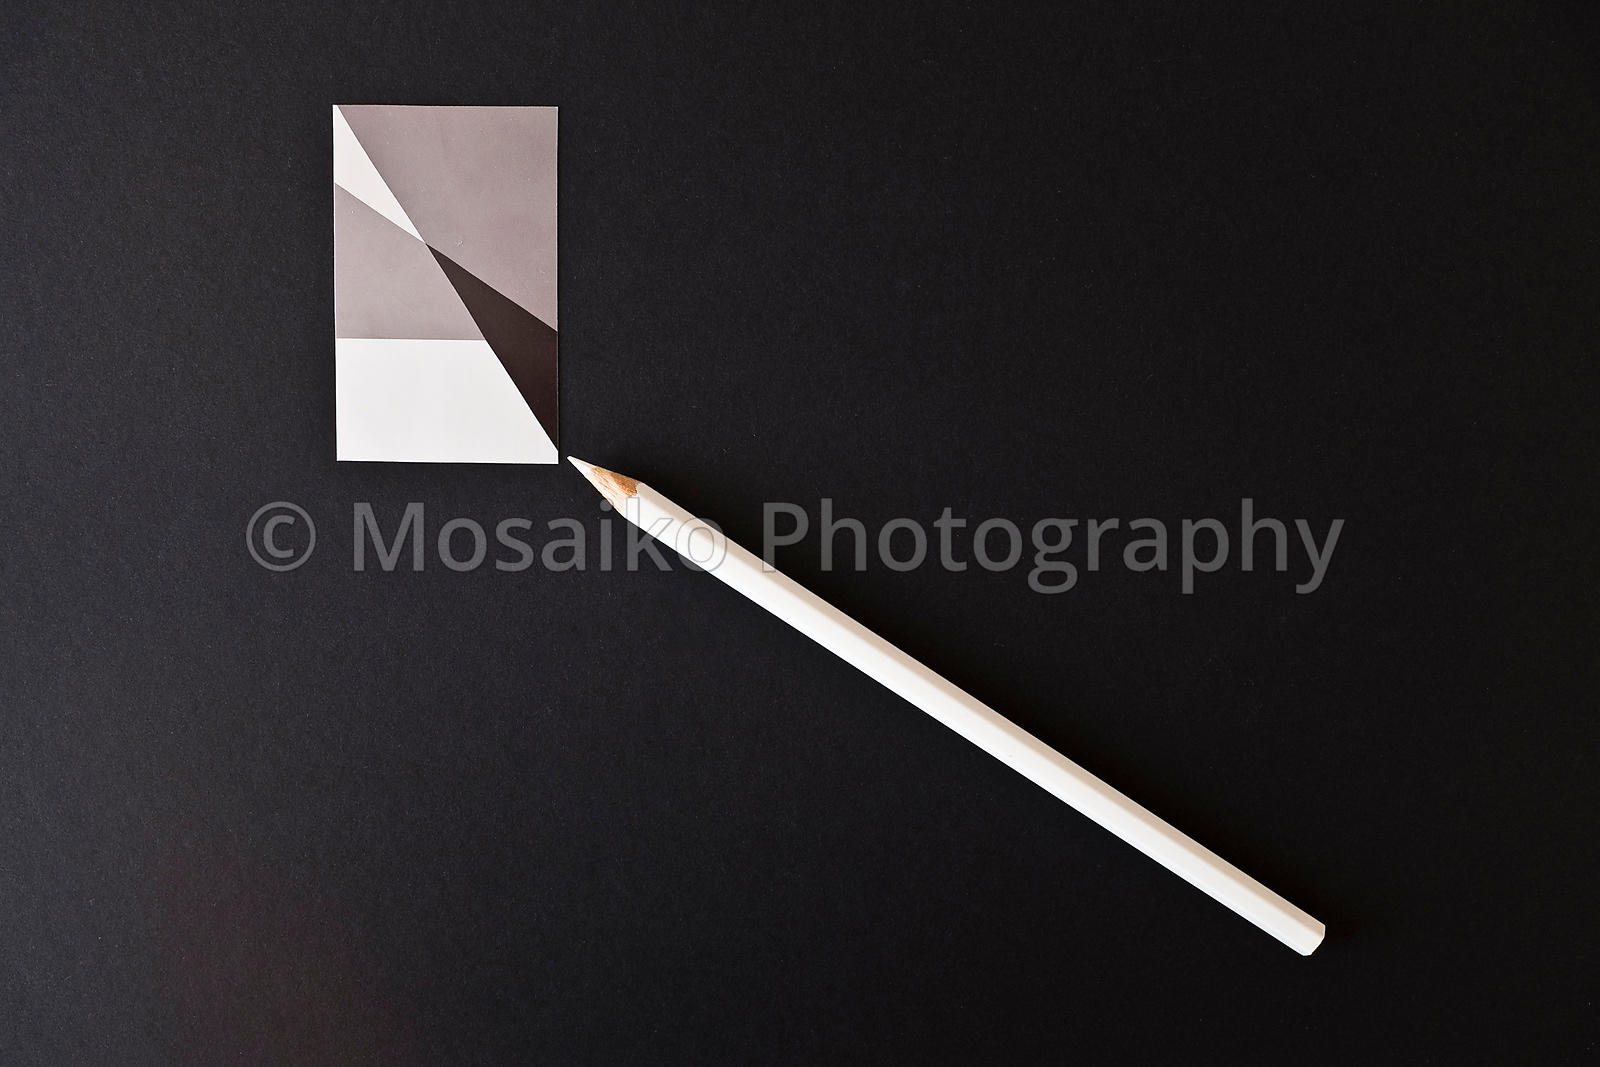 white pencil from above - black background